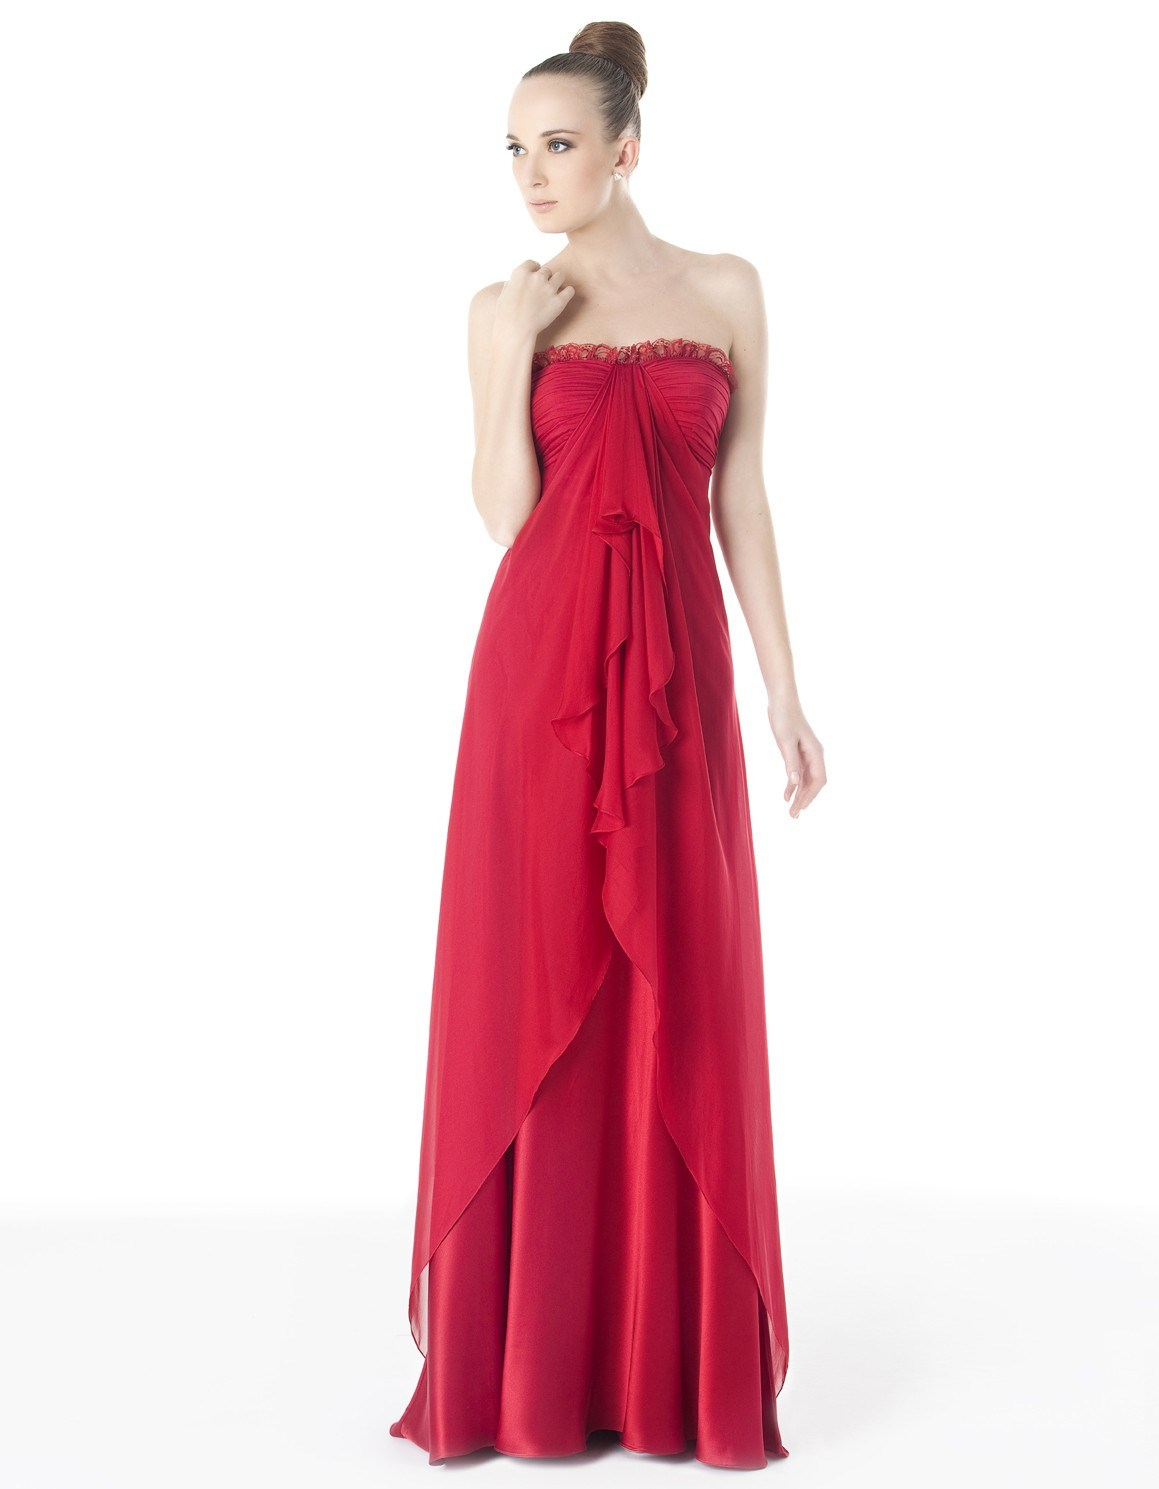 strapless red prom dresses boutique prom dresses